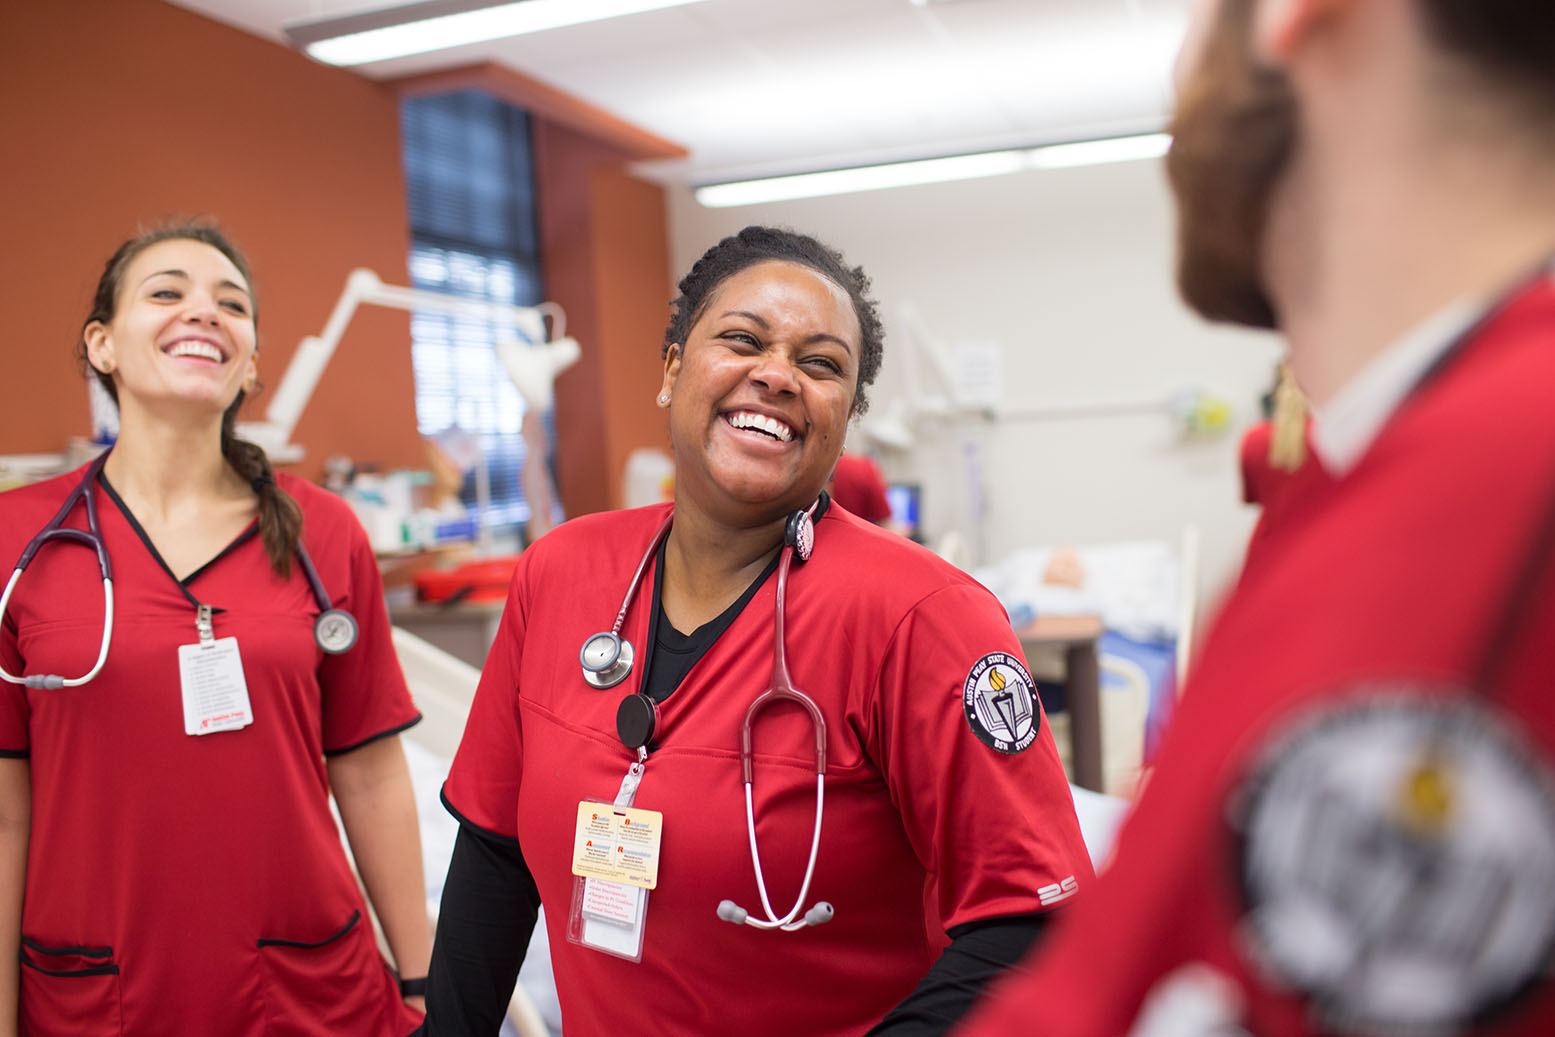 Nursing students in McCord lab